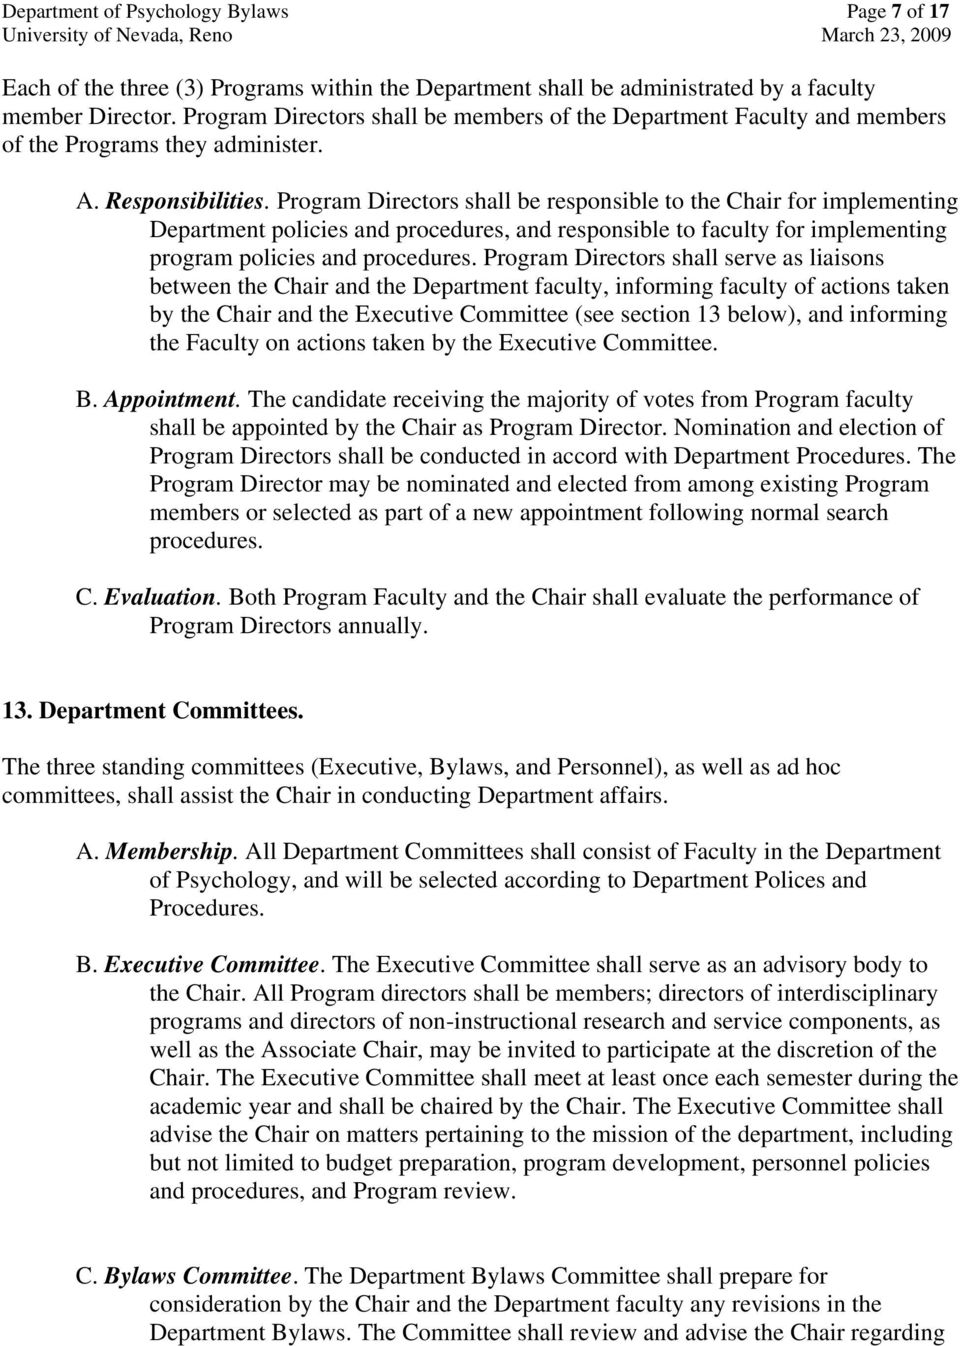 Program Directors shall be responsible to the Chair for implementing Department policies and procedures, and responsible to faculty for implementing program policies and procedures.